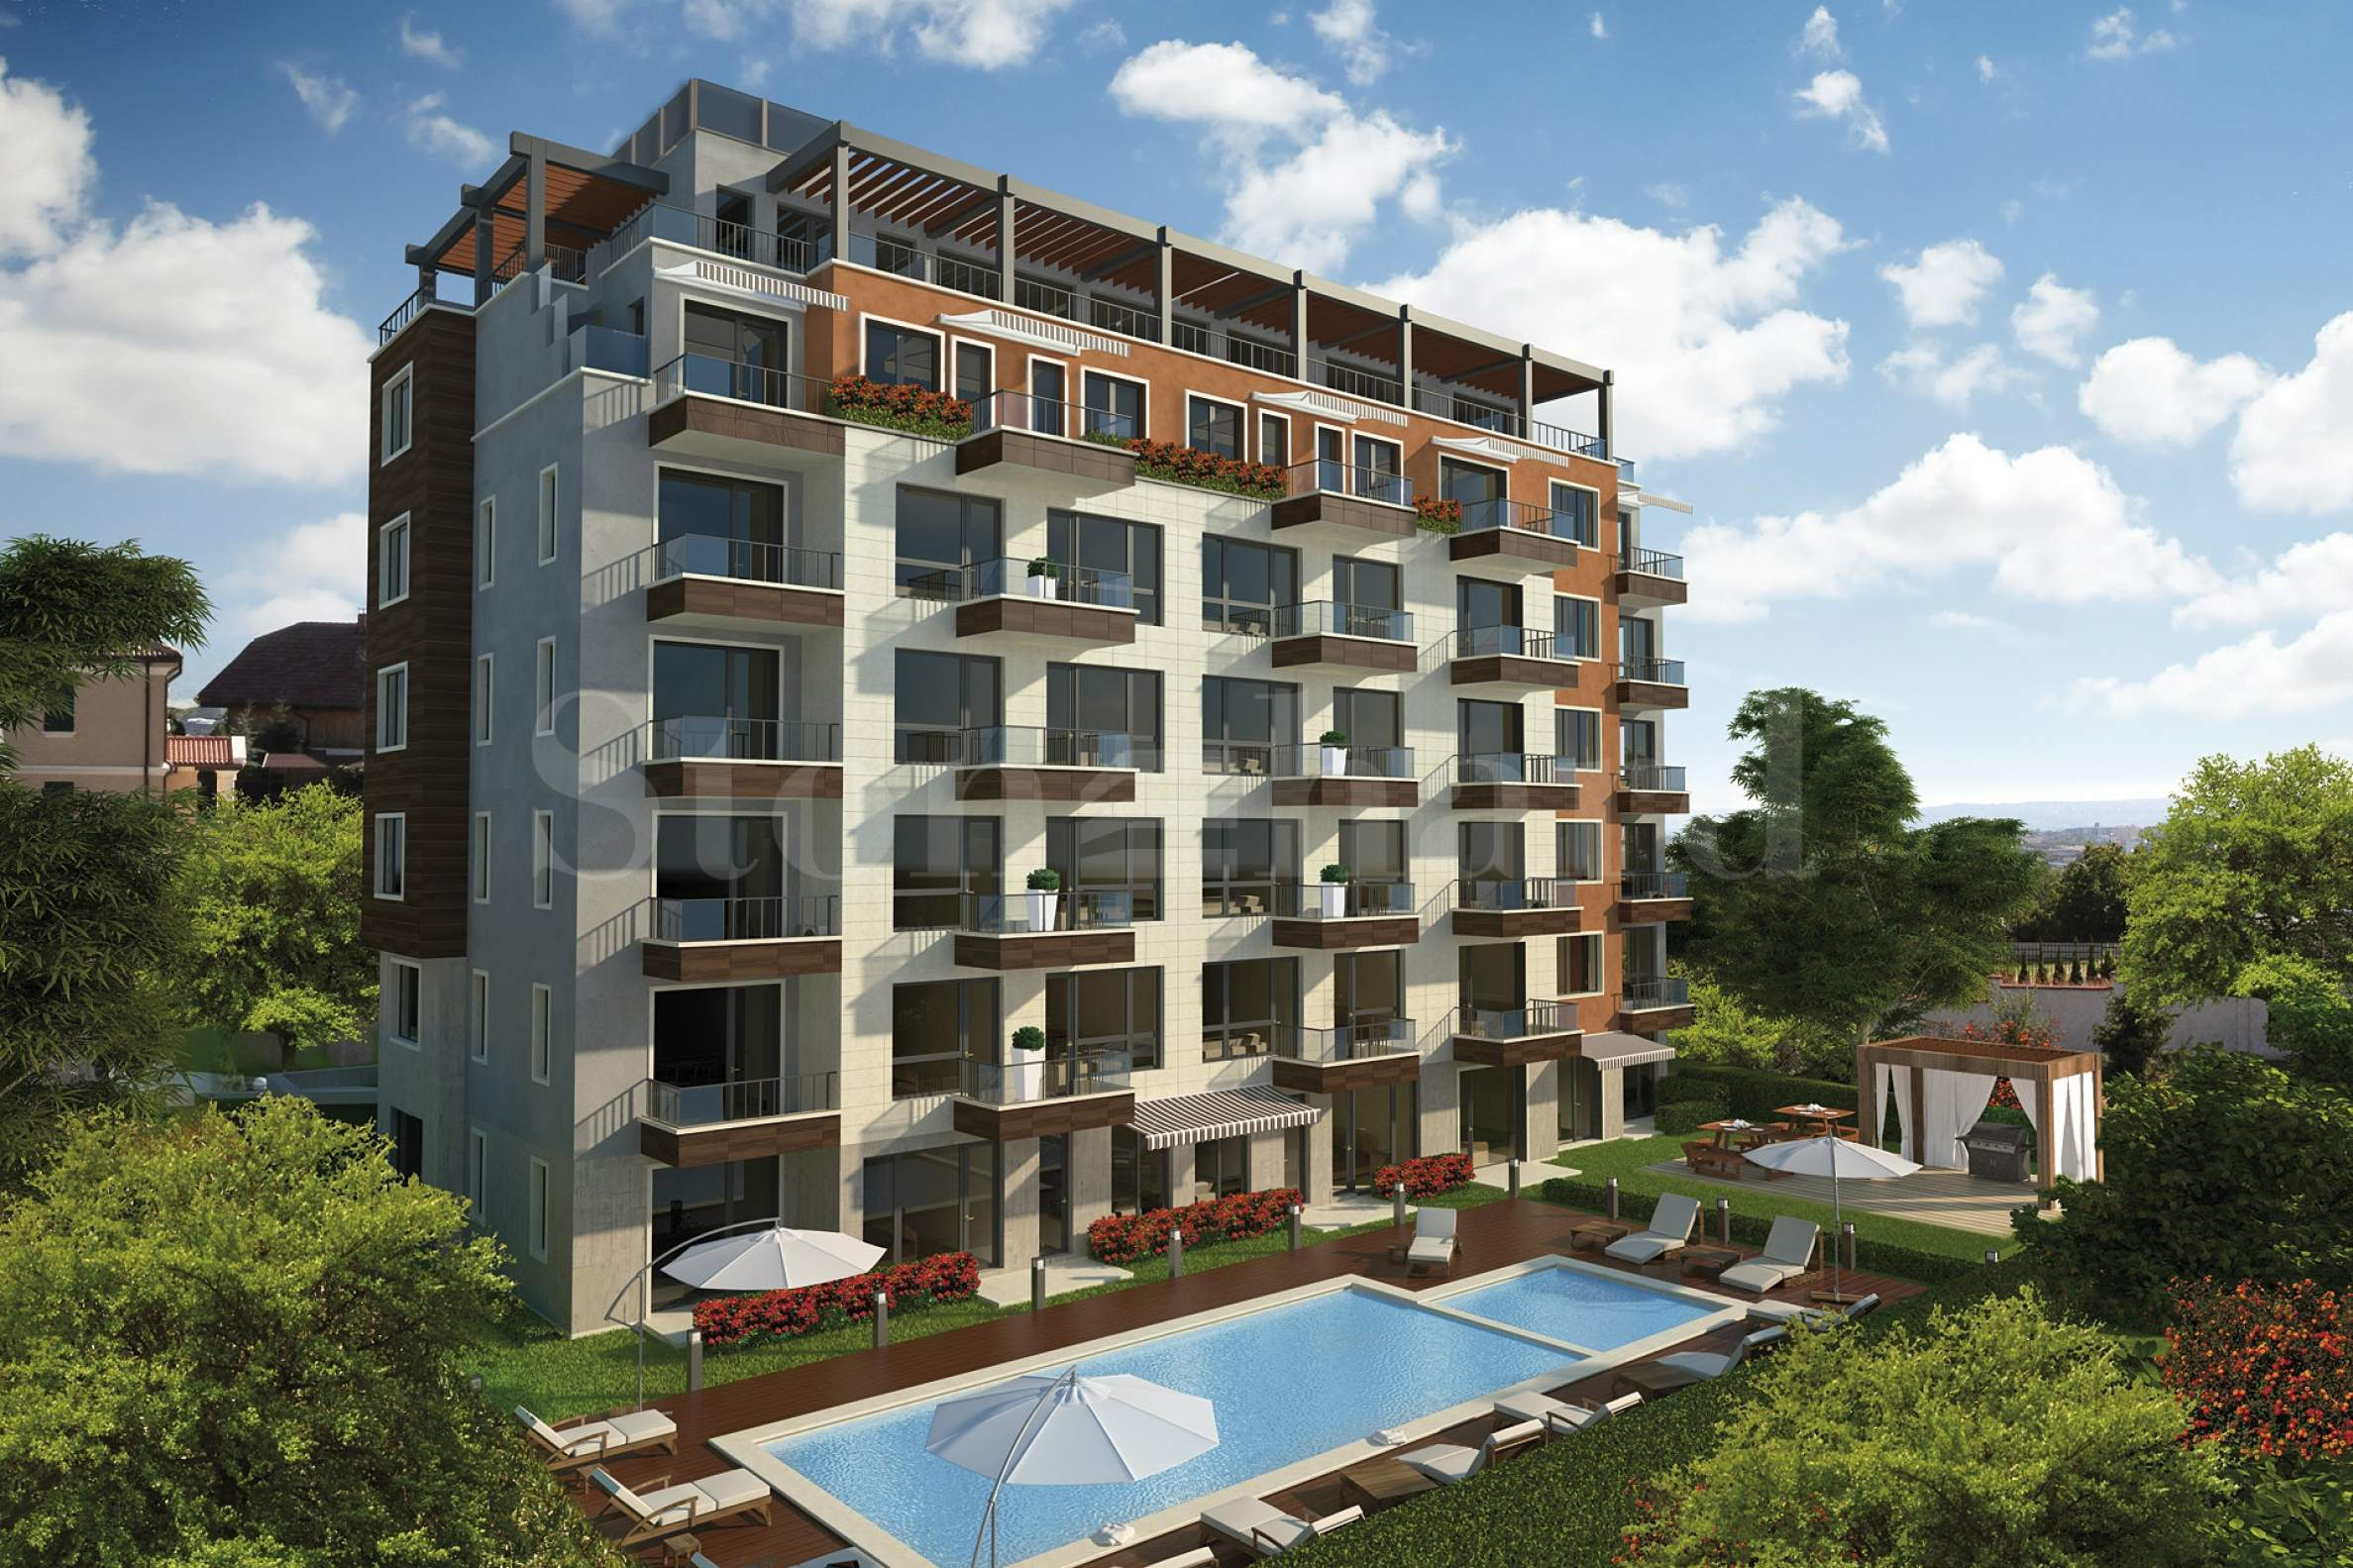 Elegant apartments in a luxury complex near beach1 - Stonehard